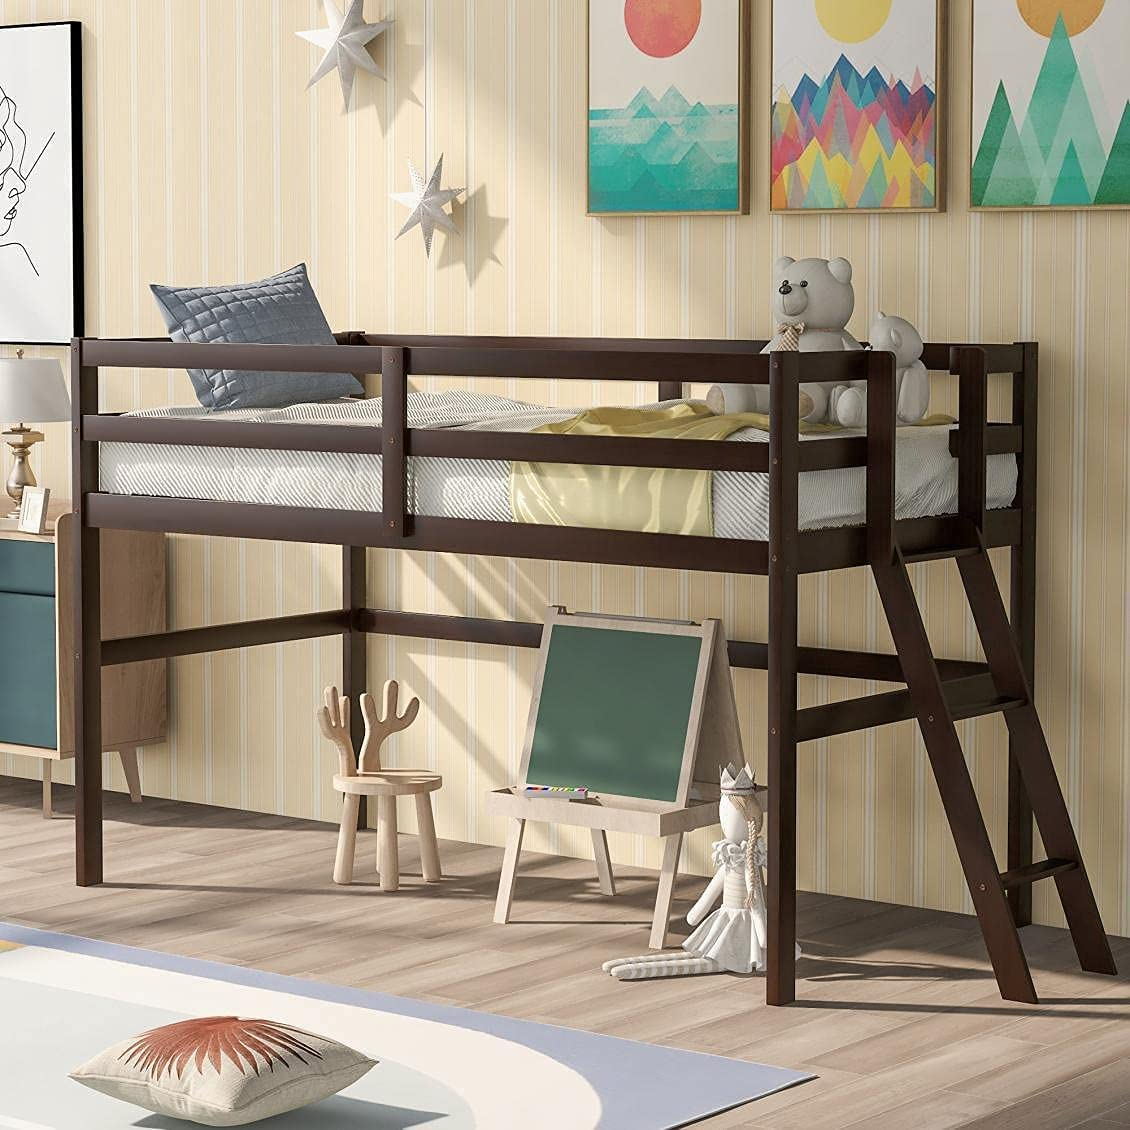 Ecueze Wooden Twin Size Low Loft LadderEspresso A Purchase Easy 4 years warranty with Bed